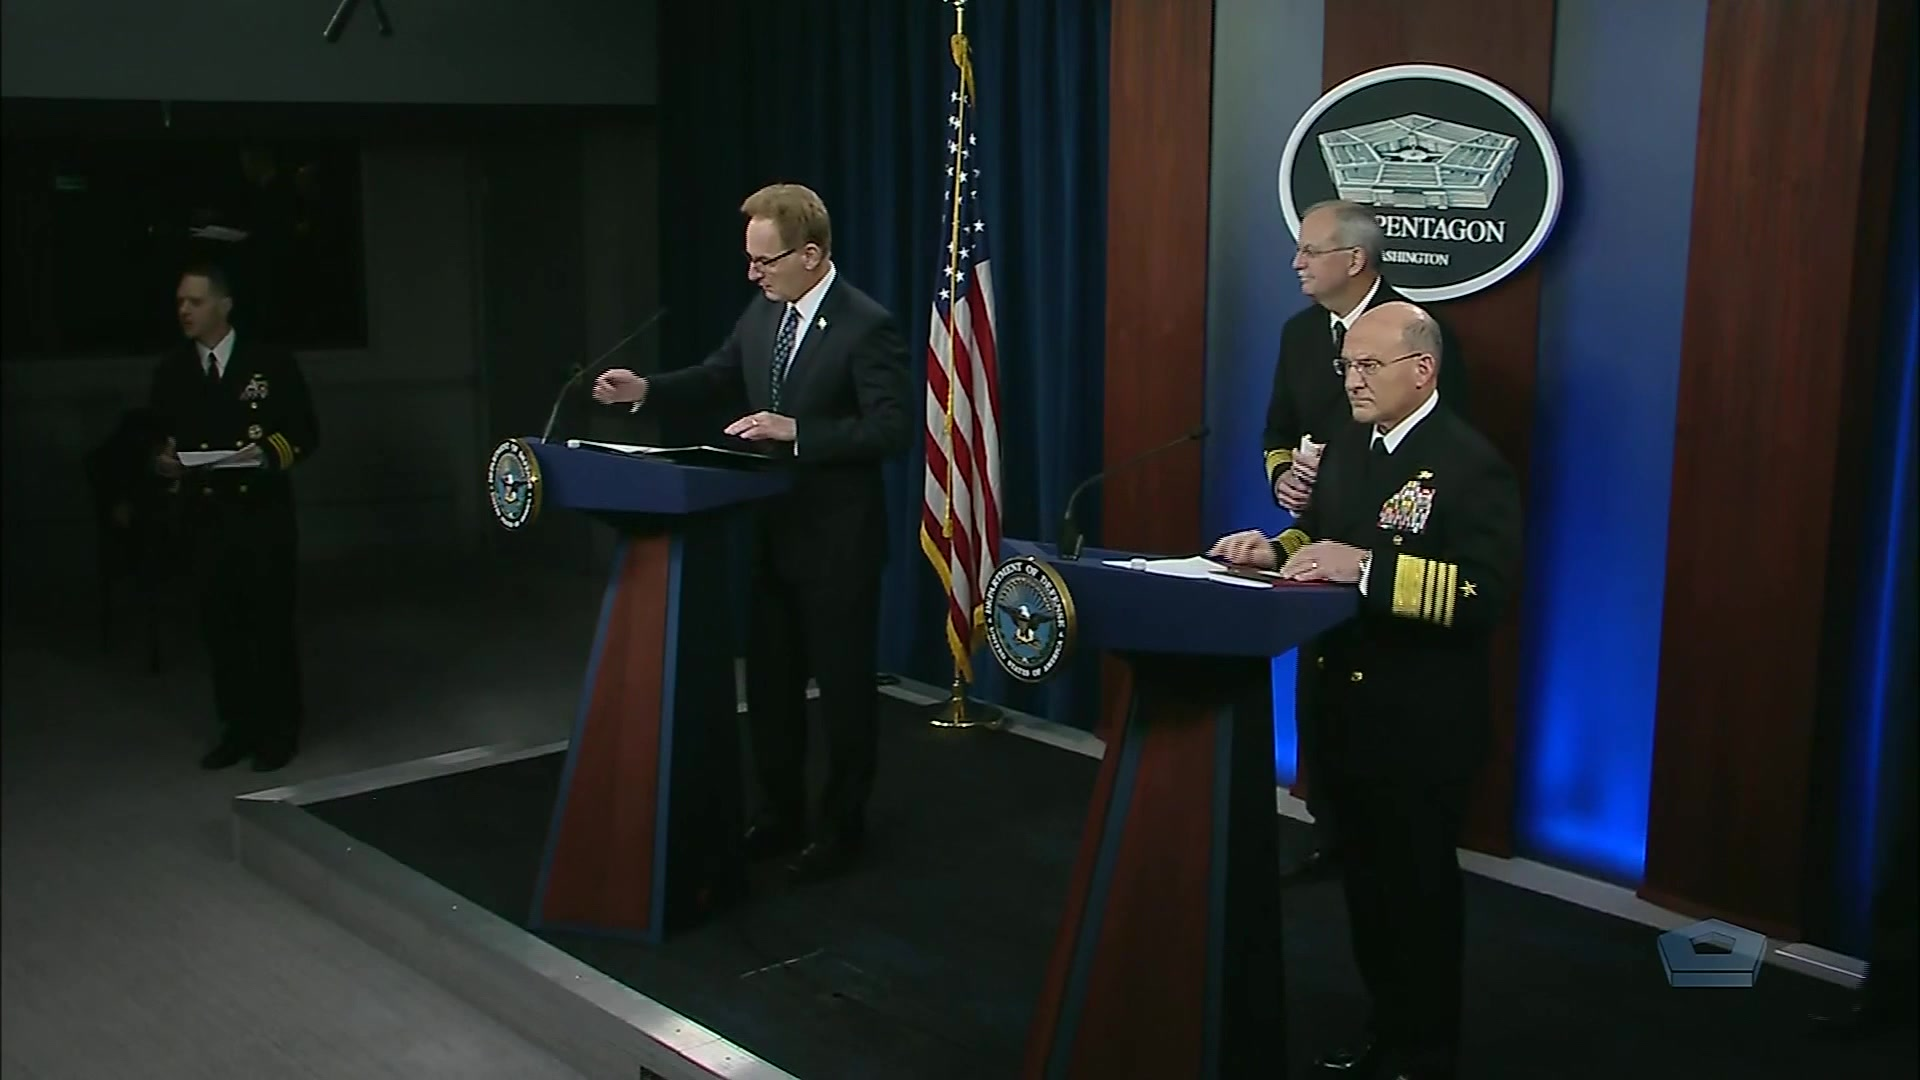 Acting Navy Secretary Thomas B. Modly and Navy Adm. Michael Gilday, chief of naval operations hold a news conference at the Pentagon, April 1, 2020.